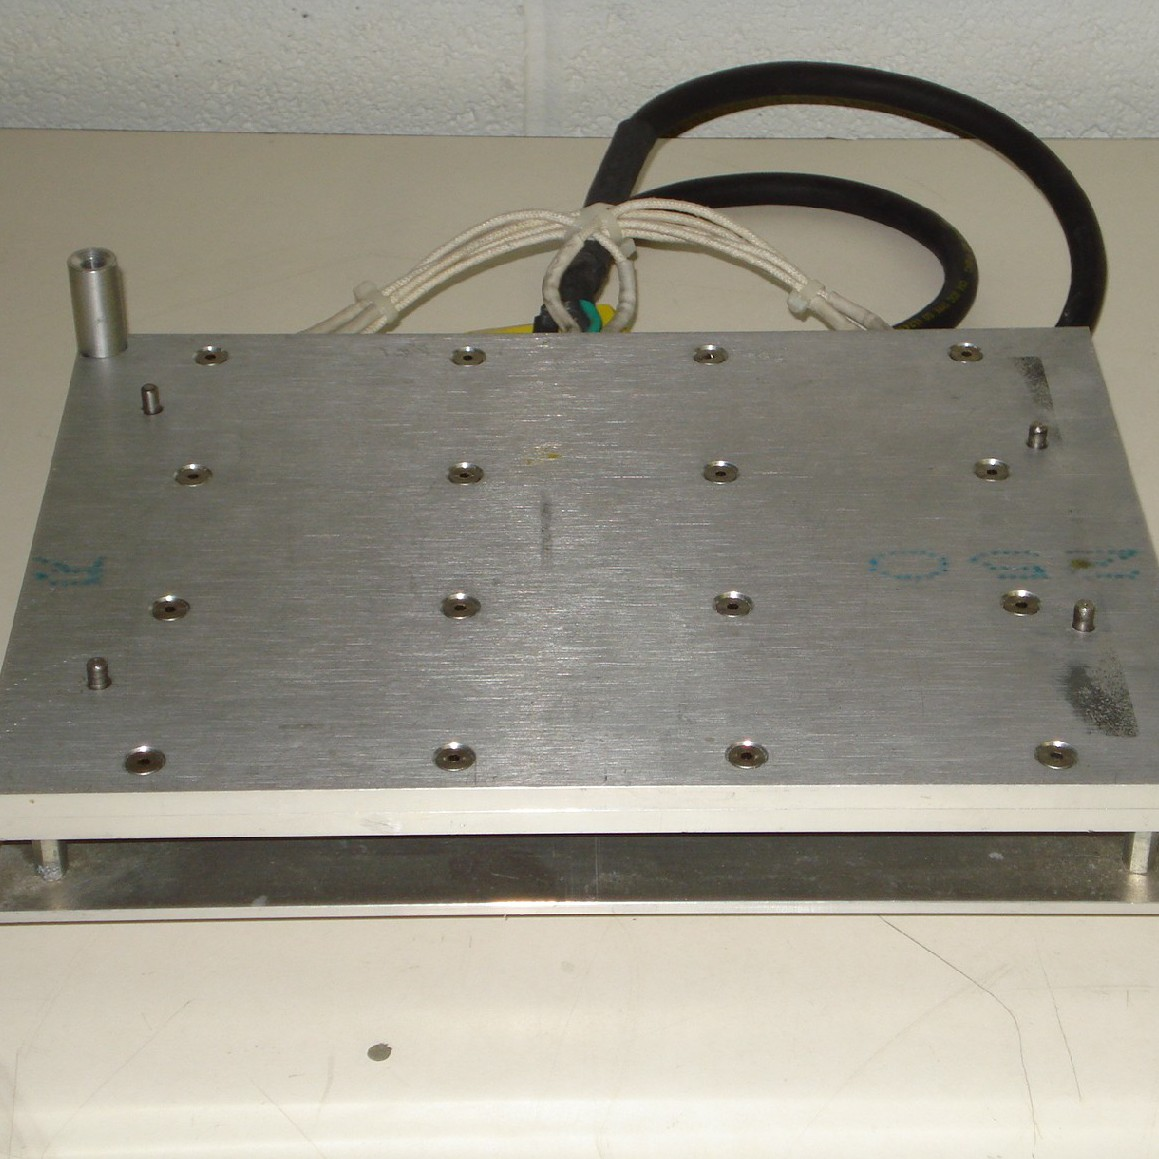 Lab-Line Heater for Titer Plate Shaker Model #4625 Image